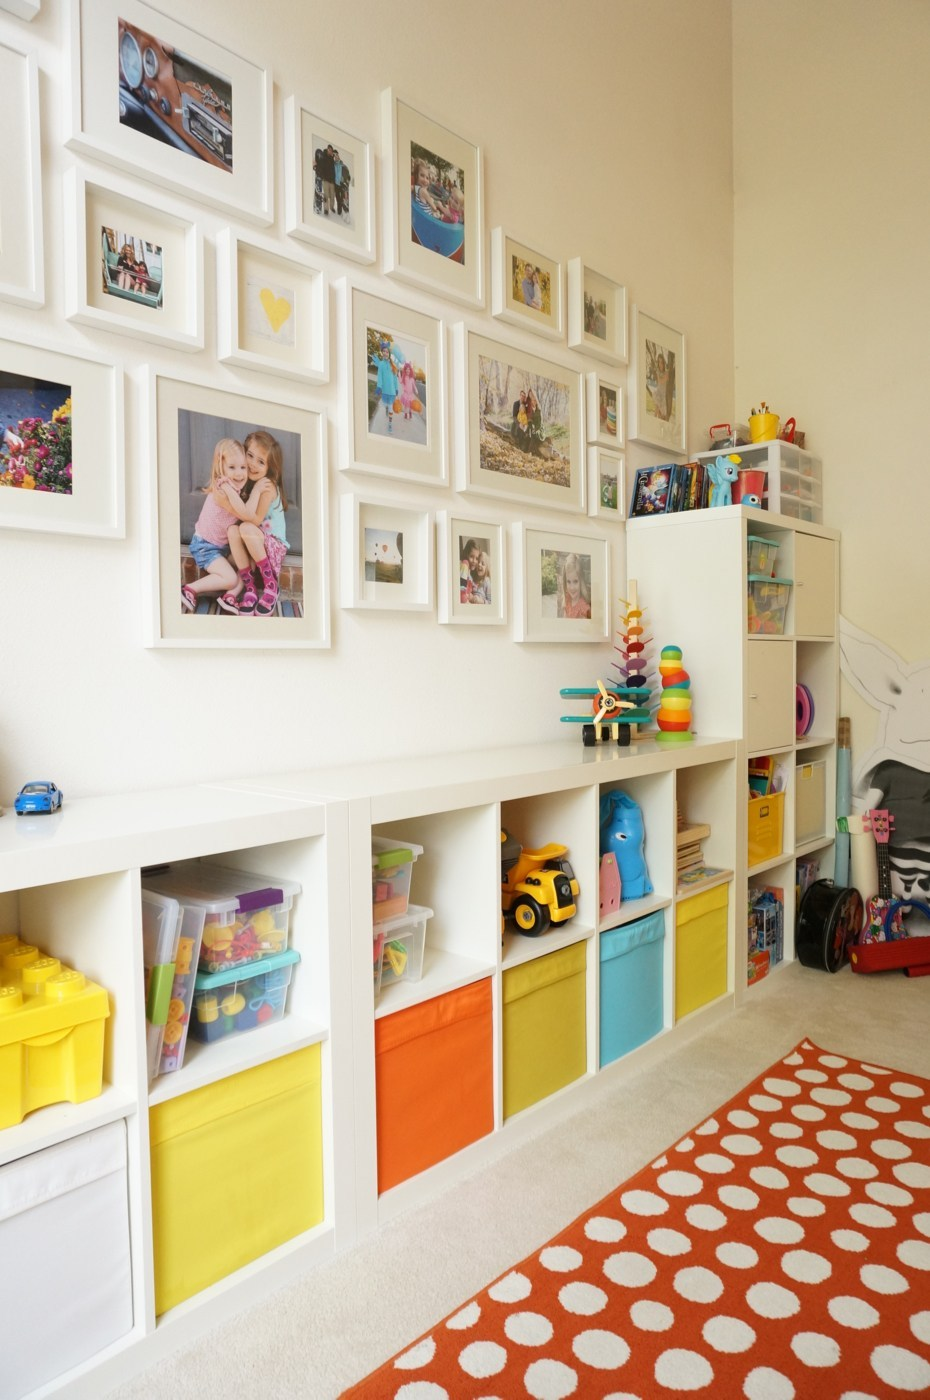 This cute gallery wall and more tips on creating one in your home, are from Heather at  The Caterpillar Years.